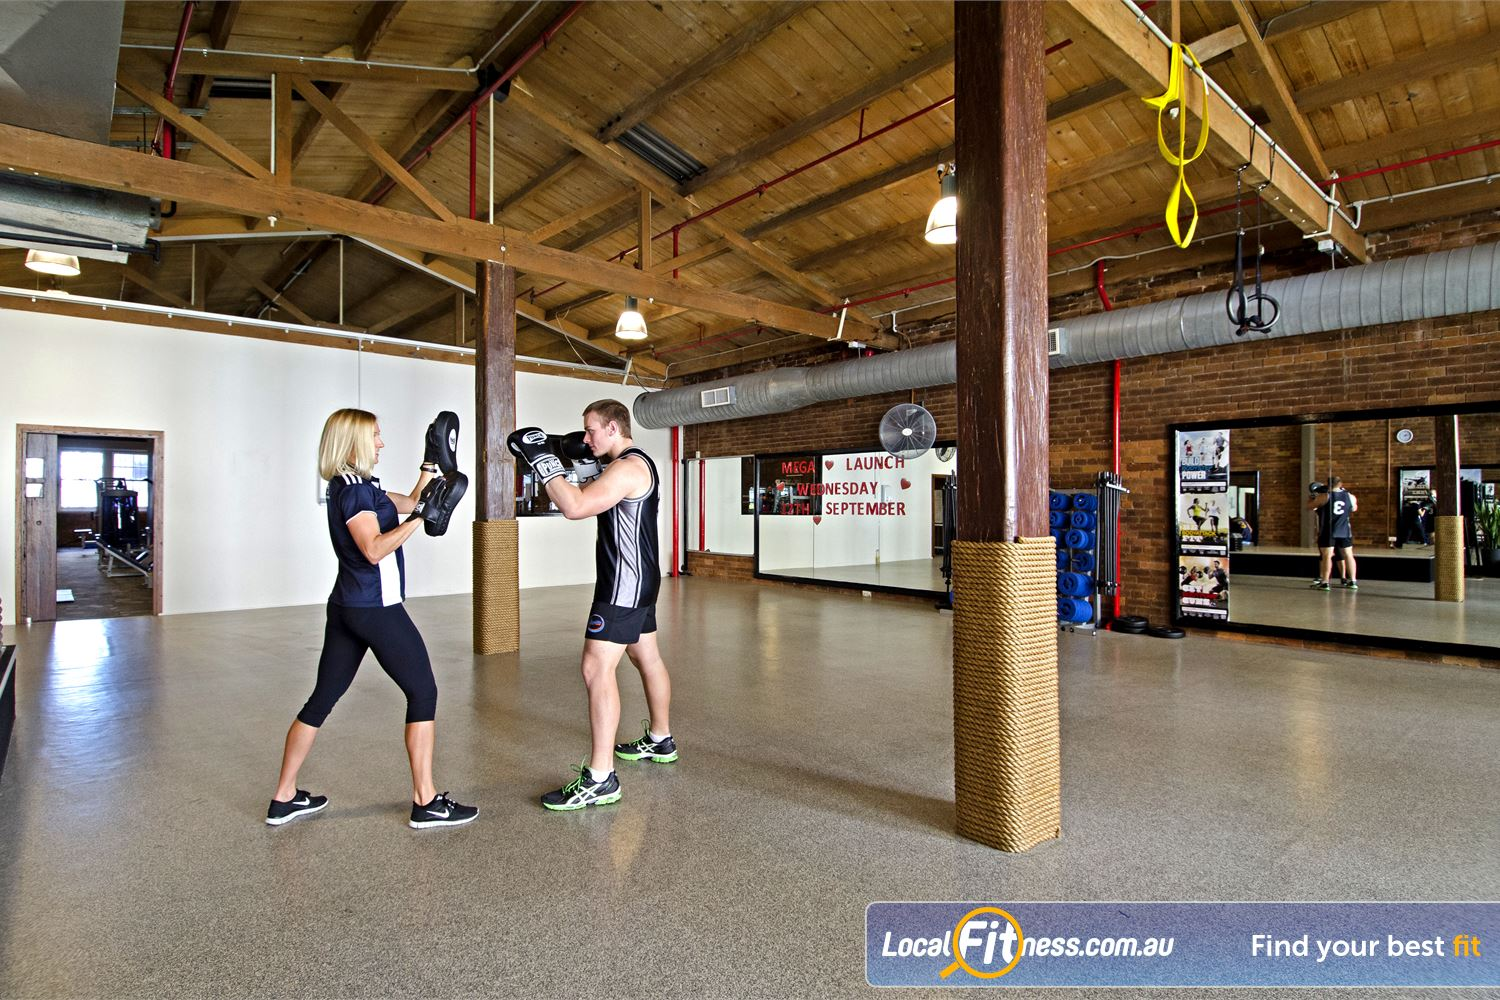 Goodlife Health Clubs Edward St Near George Street Brisbane personal training programs are designed to suit your goals and can include cardio boxing.